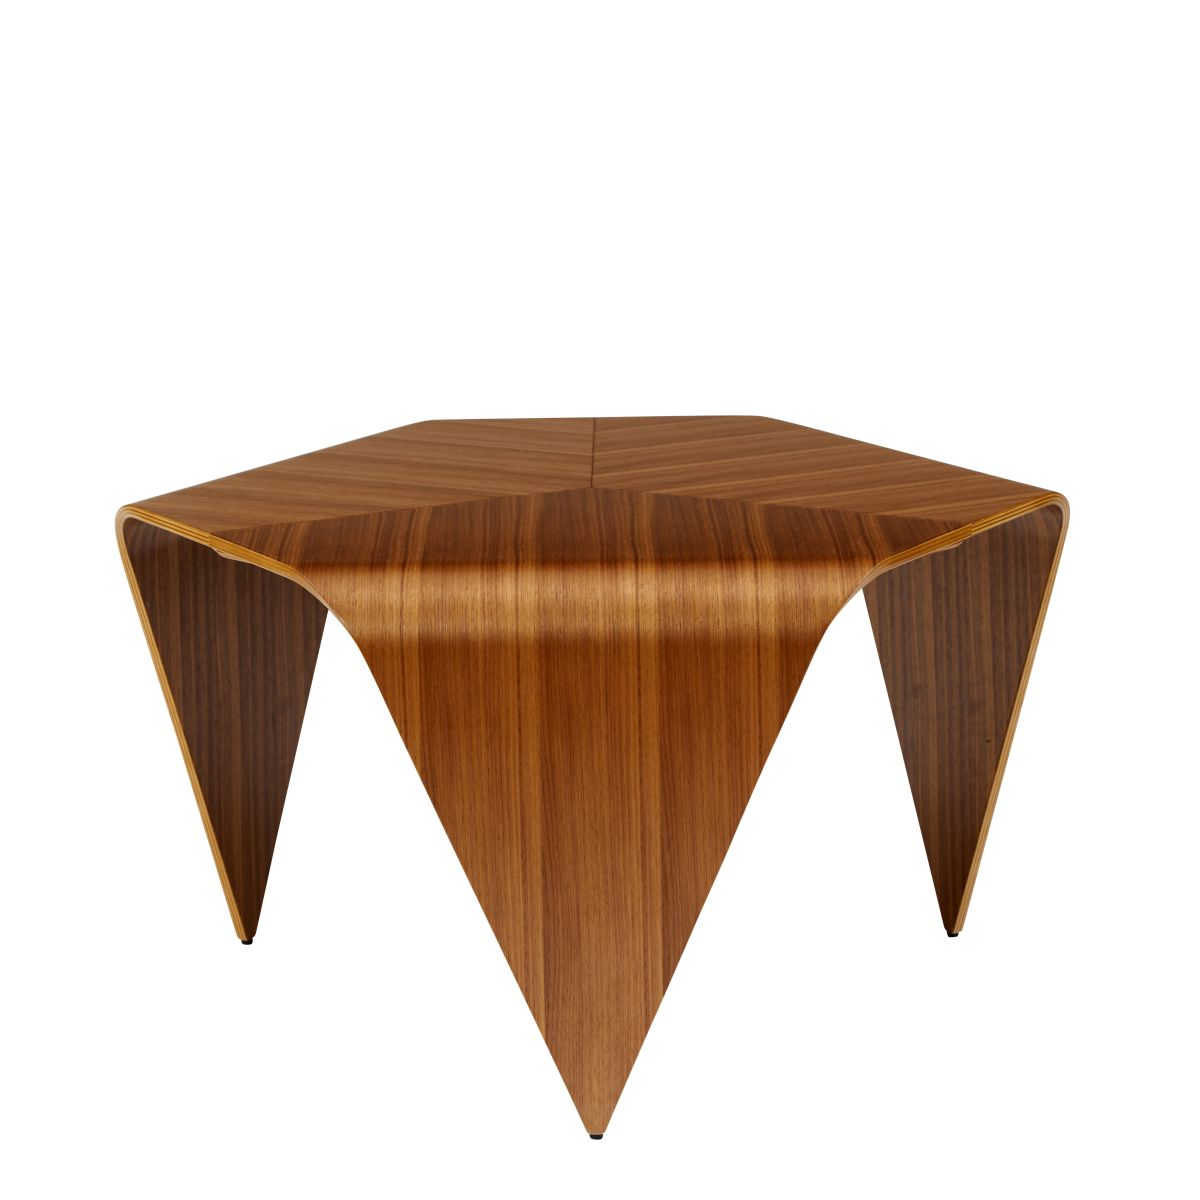 Trienna-Table-walnut-2627428